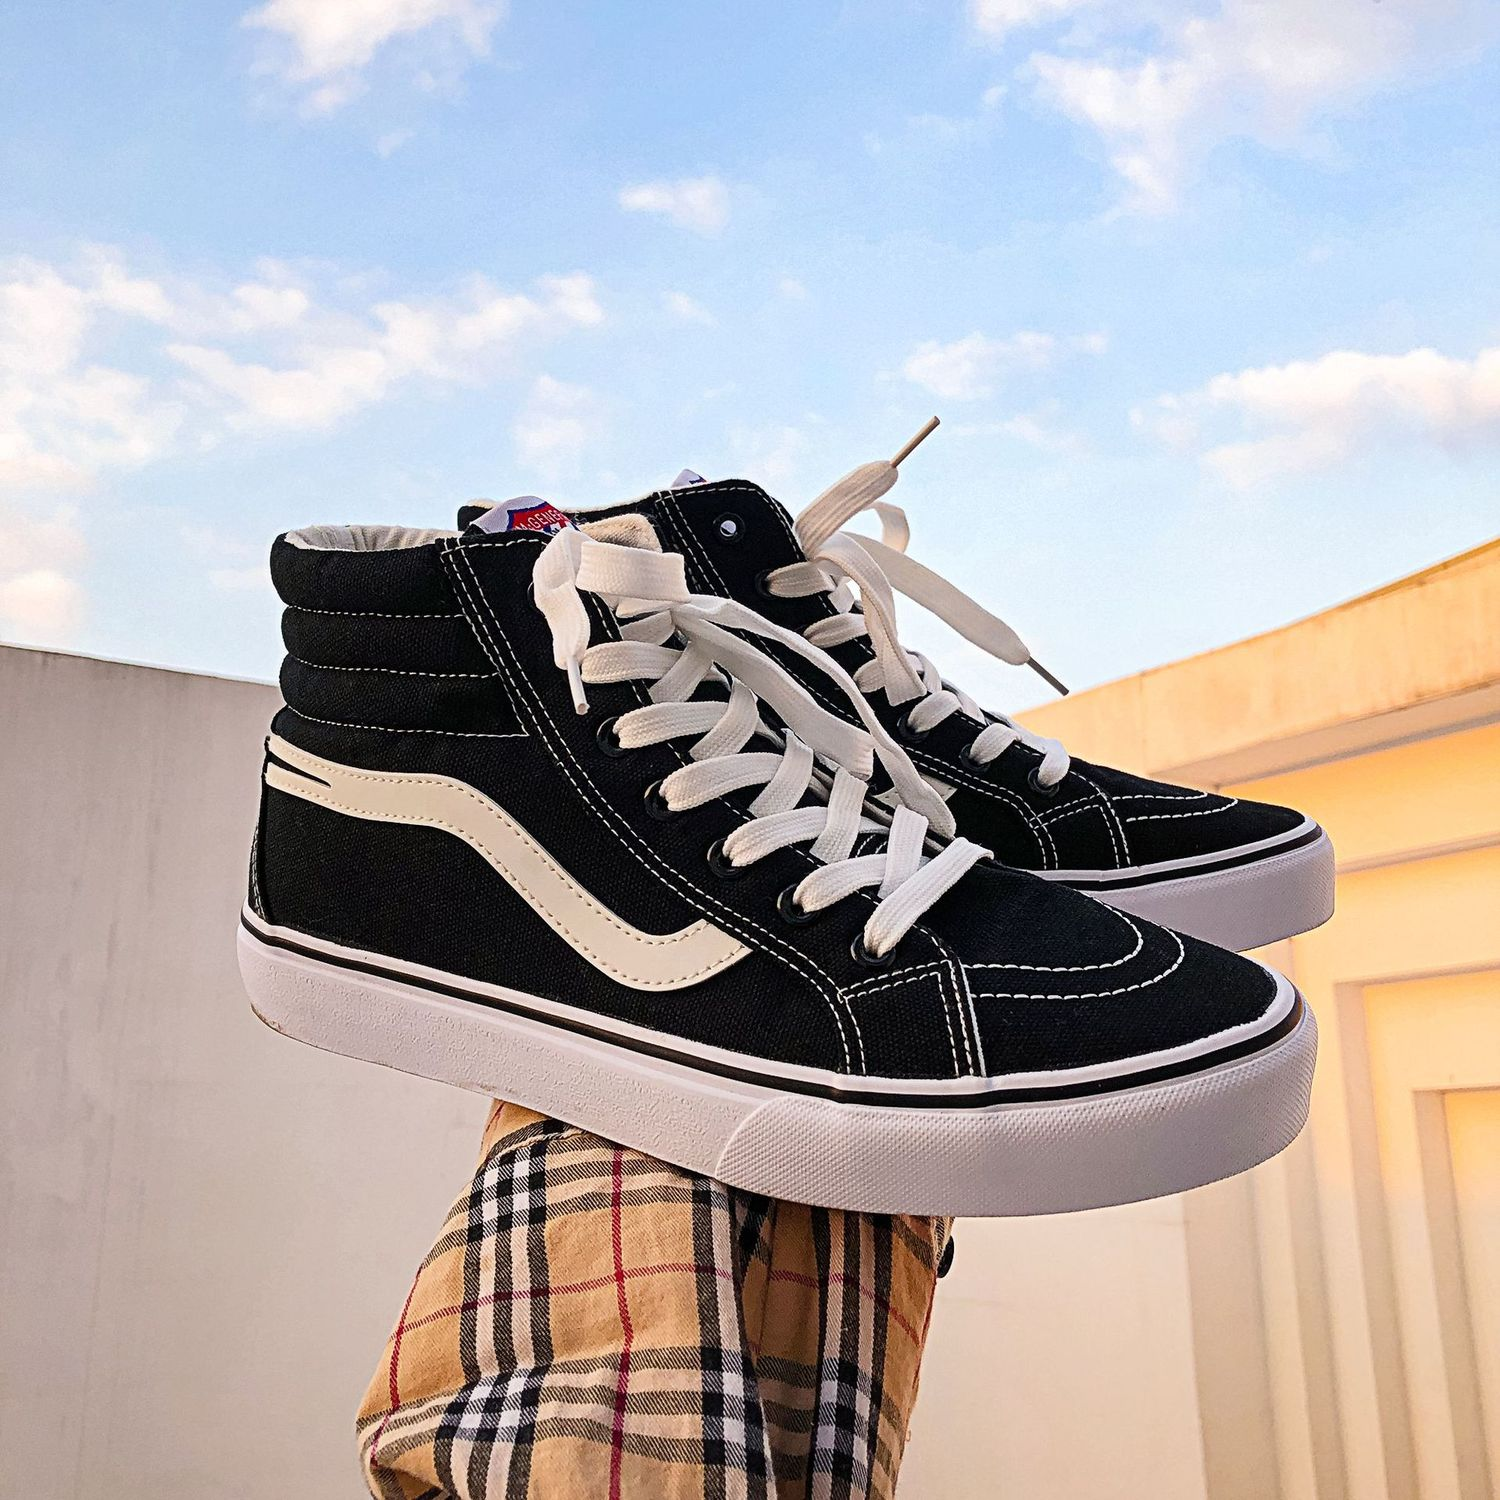 Black And White Classic Canvas Shoe Tide Male Shoe Student Ulzzang 2020 Ins Skate Leisure Shoes Woman High Top Sneakers Men S